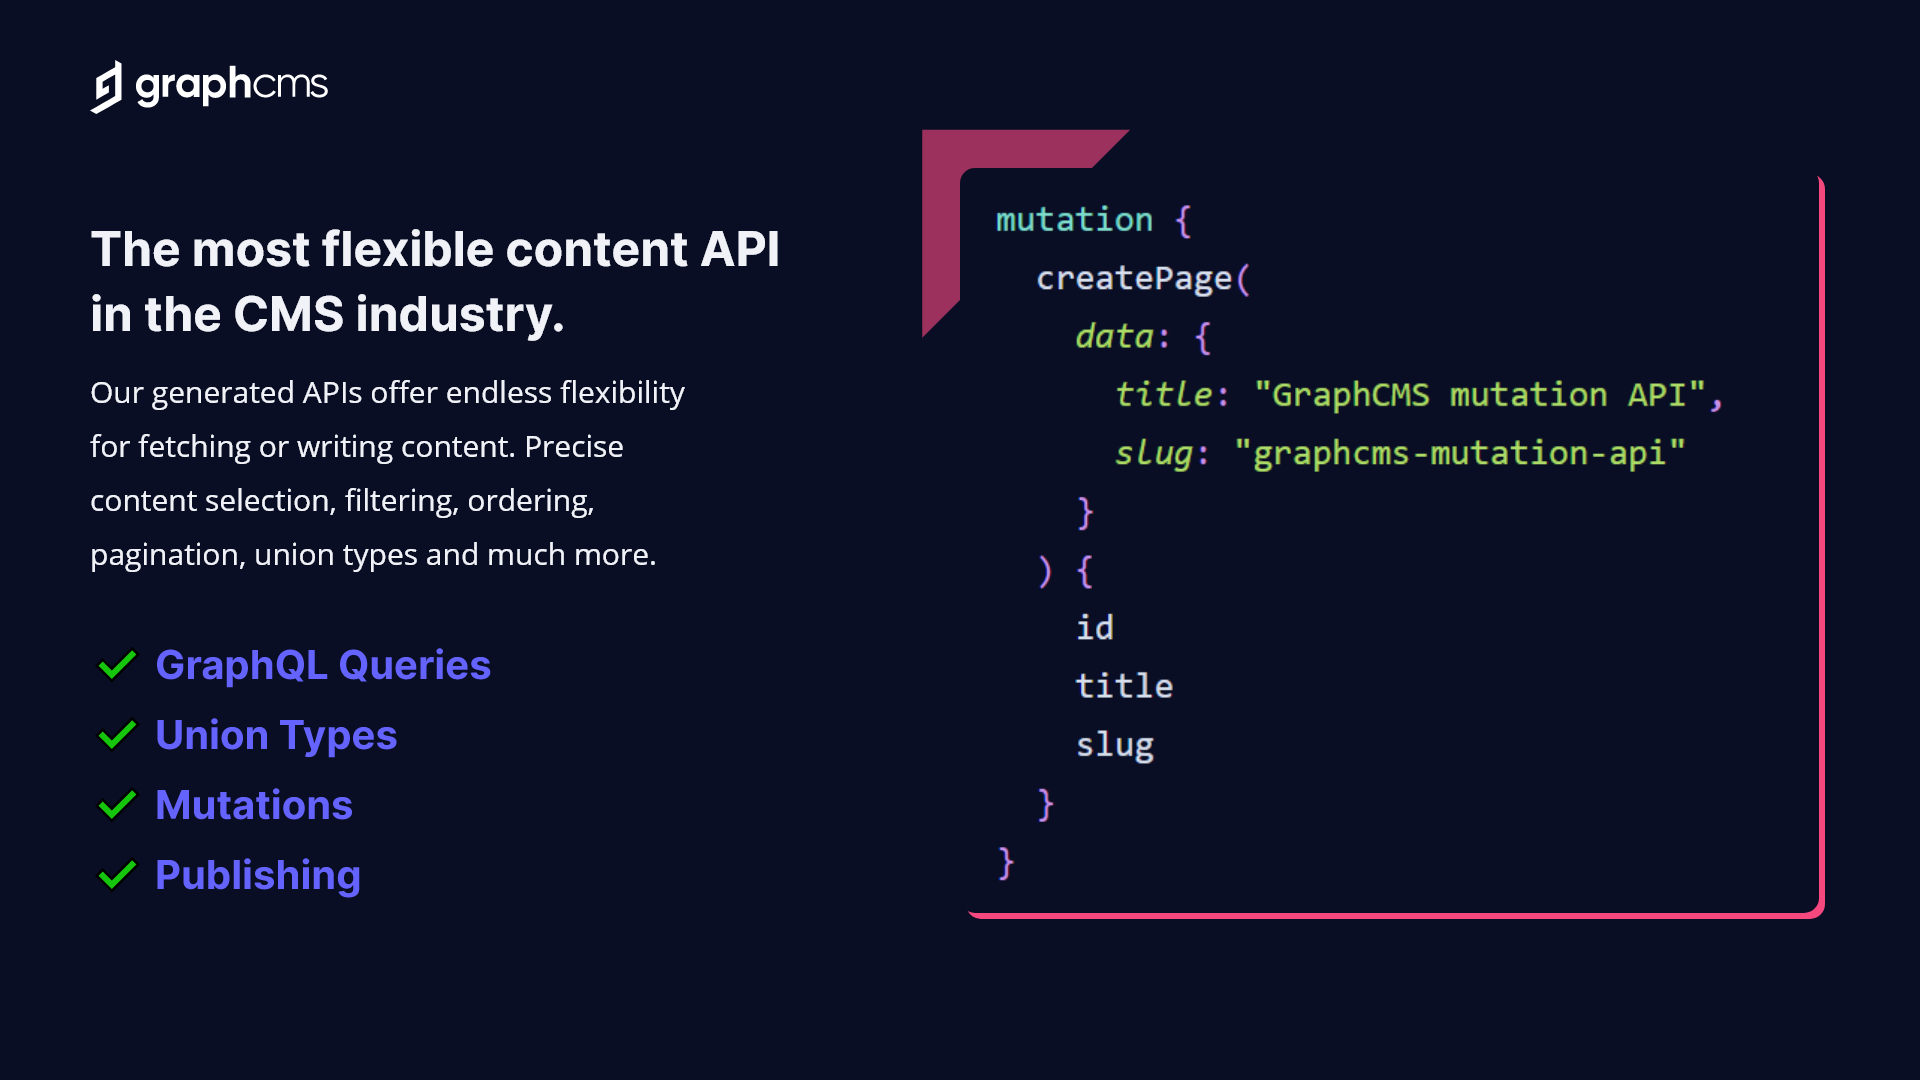 GraphCMS has the most flexible Content API in the Headless CMS industry, supporting powerful GraphQL queries, GraphQL mutations, Union Types, and advanced editorial experiences.